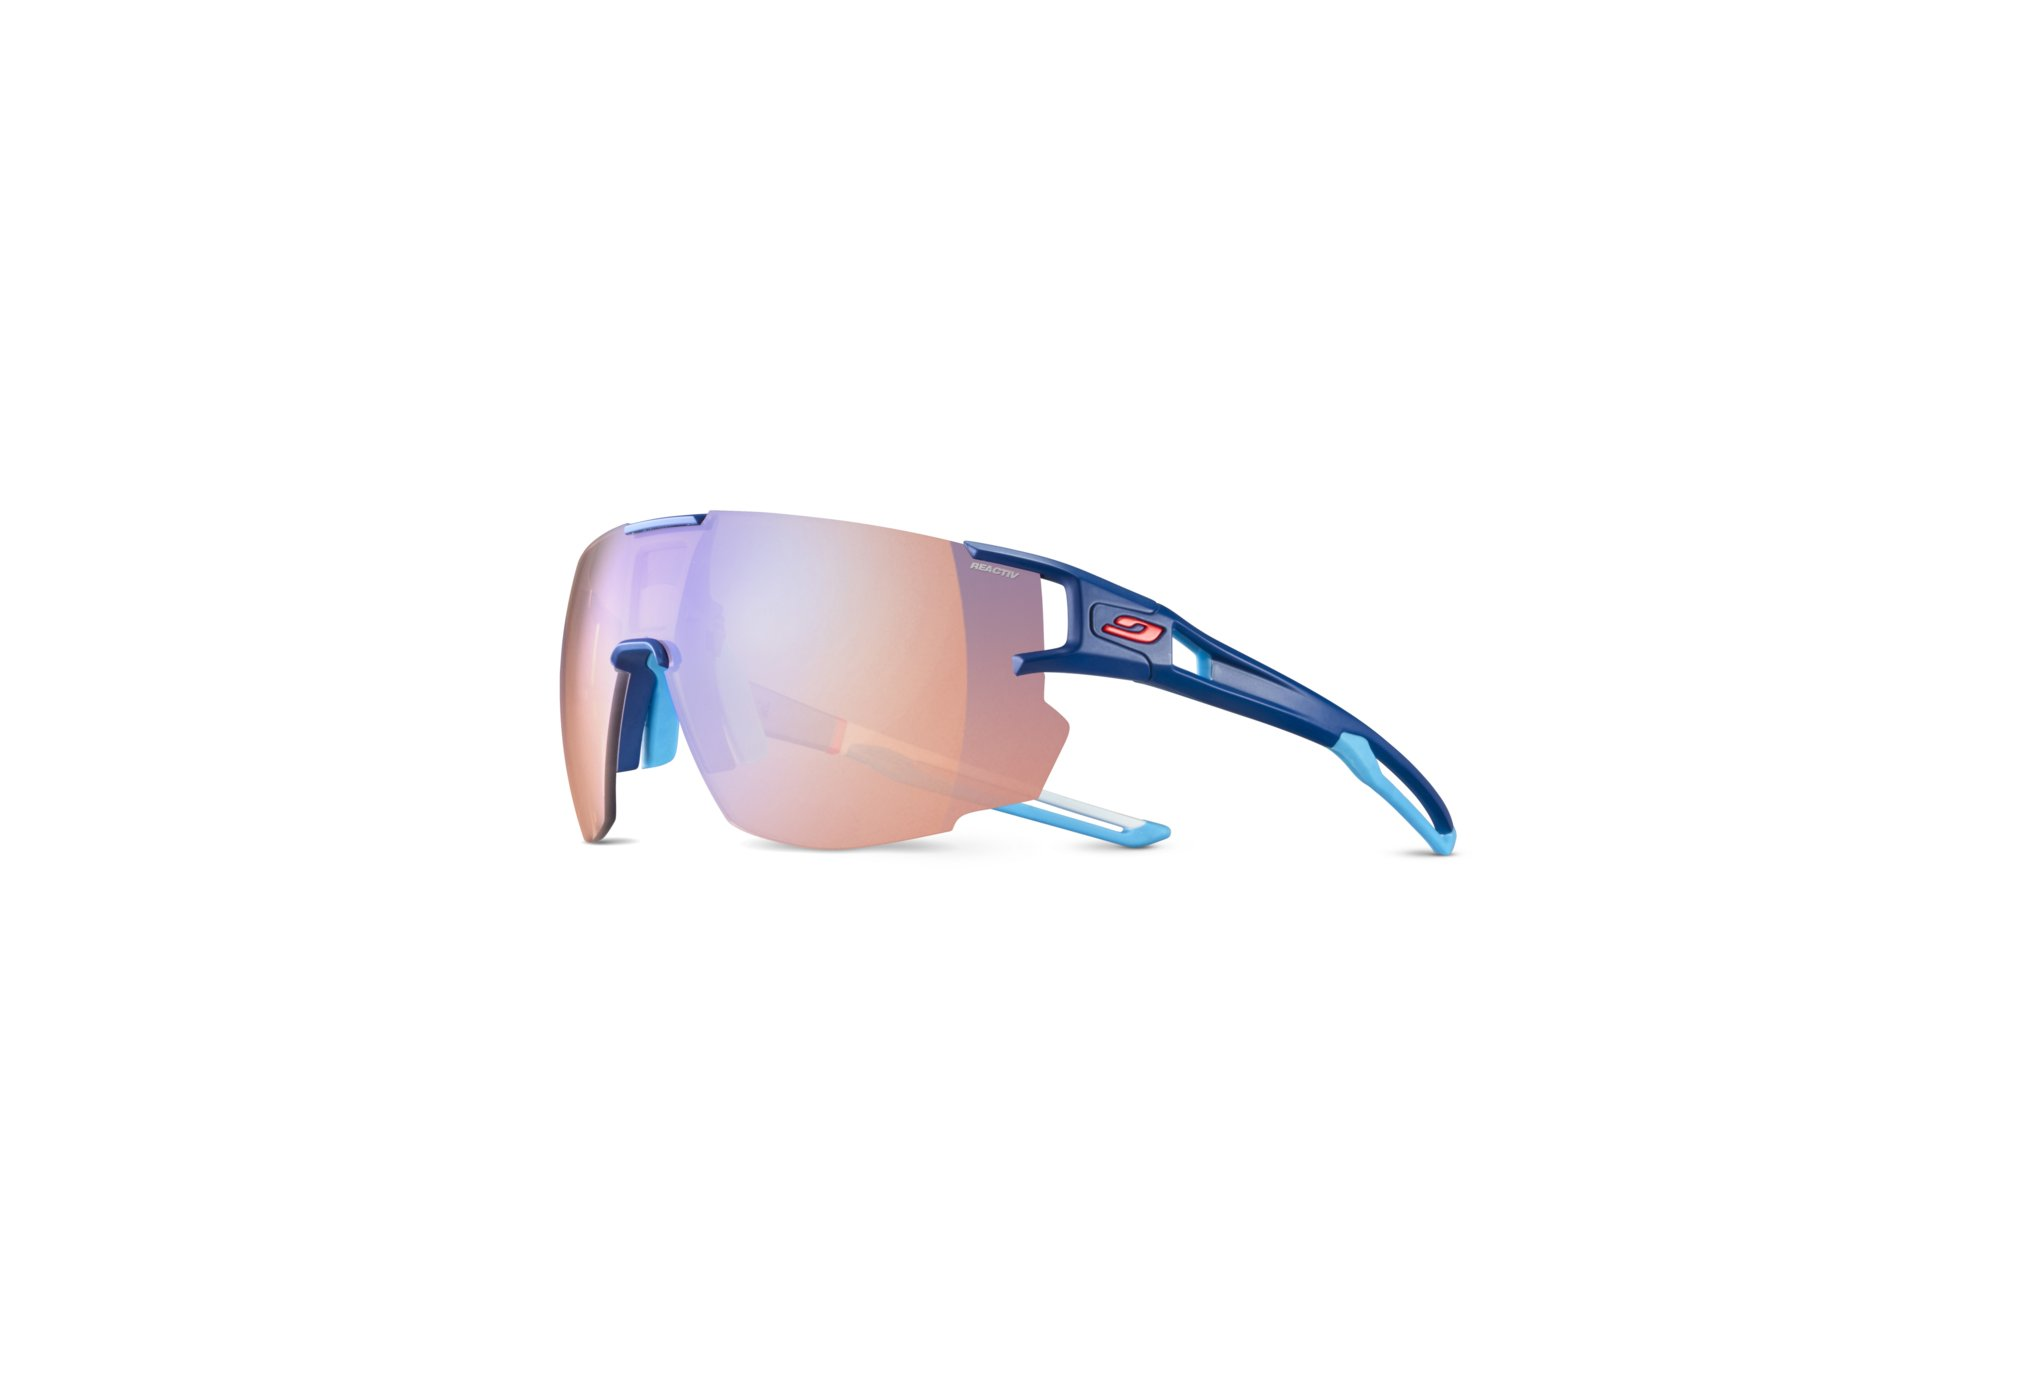 Julbo Aerospeed martin fourcade reactiv photochromic performance 1-3 lunettes